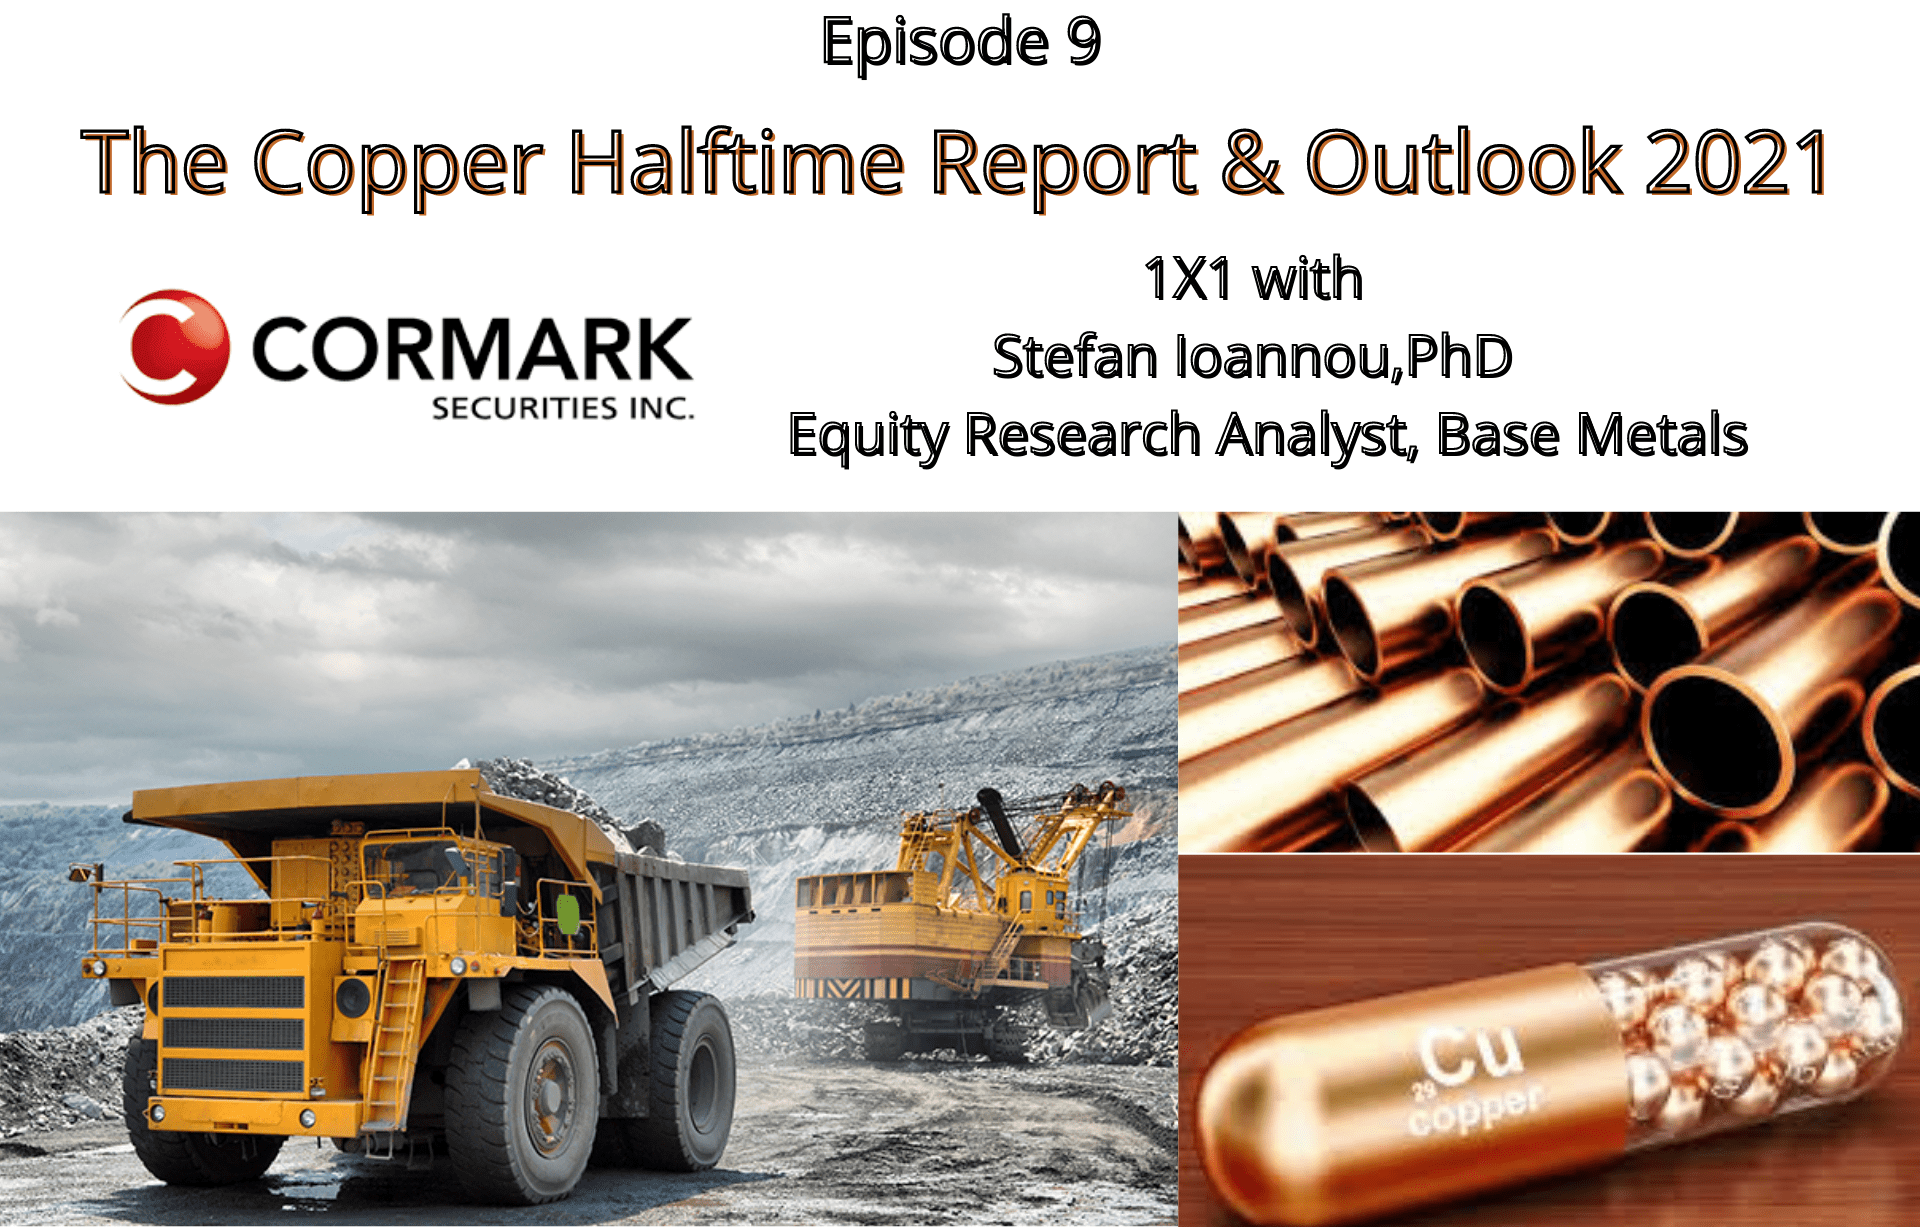 EP. 9: The Copper Halftime Report & Outlook 2021